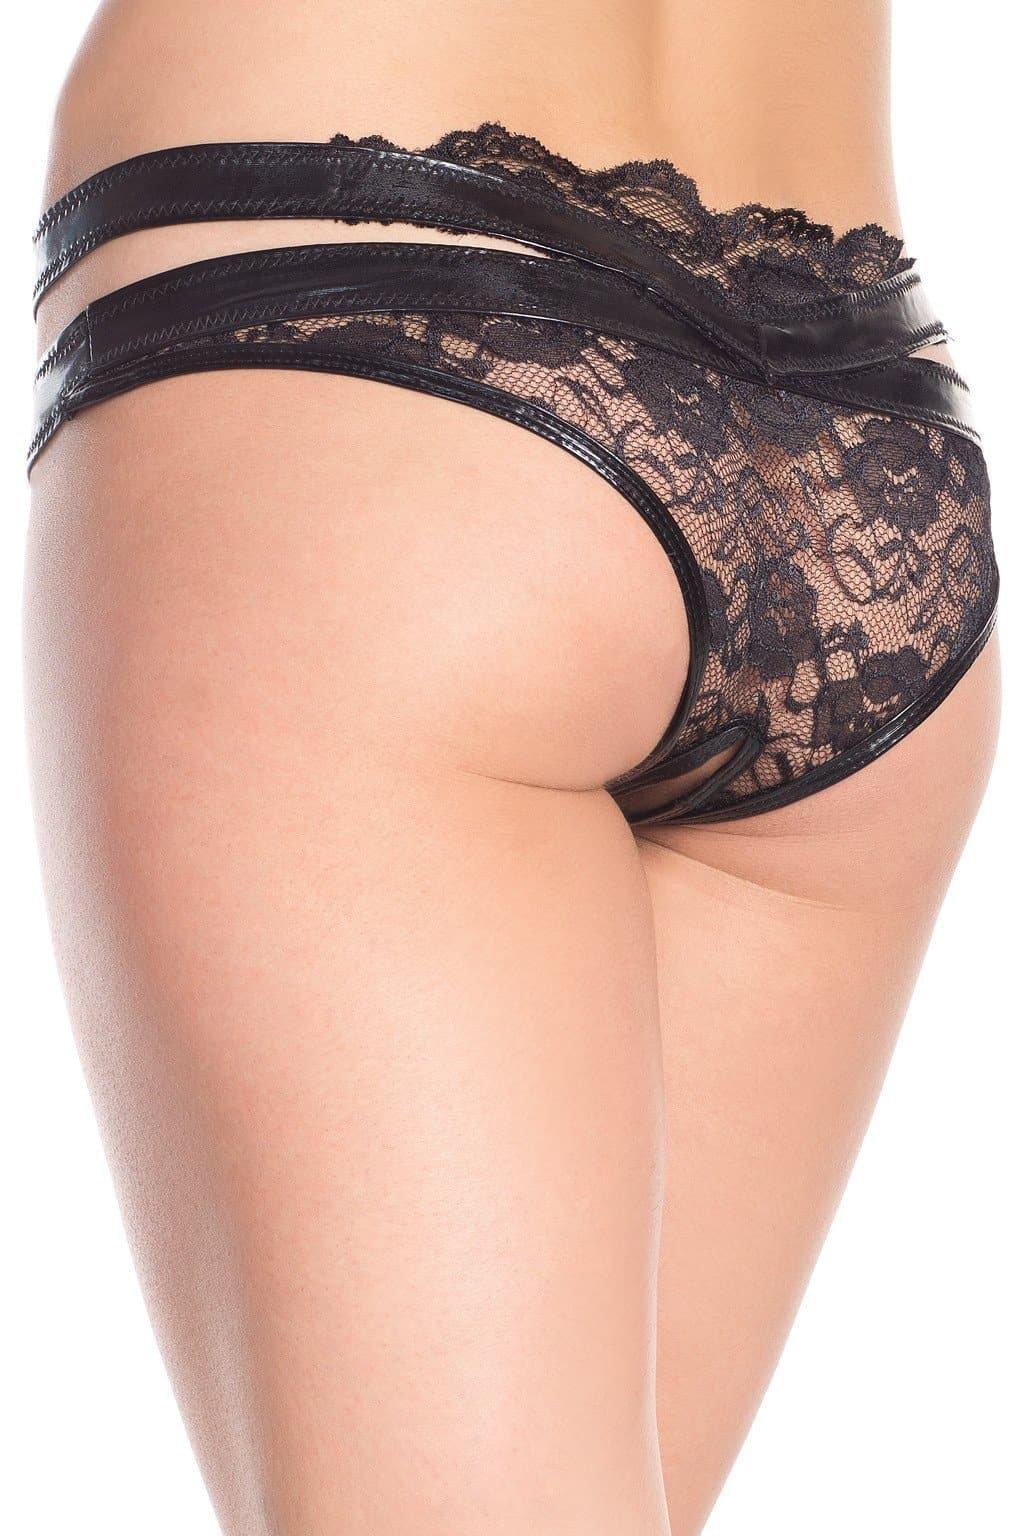 Be Wicked BW1645 Black Lace/Leather Like Strappy Crotchless Brief